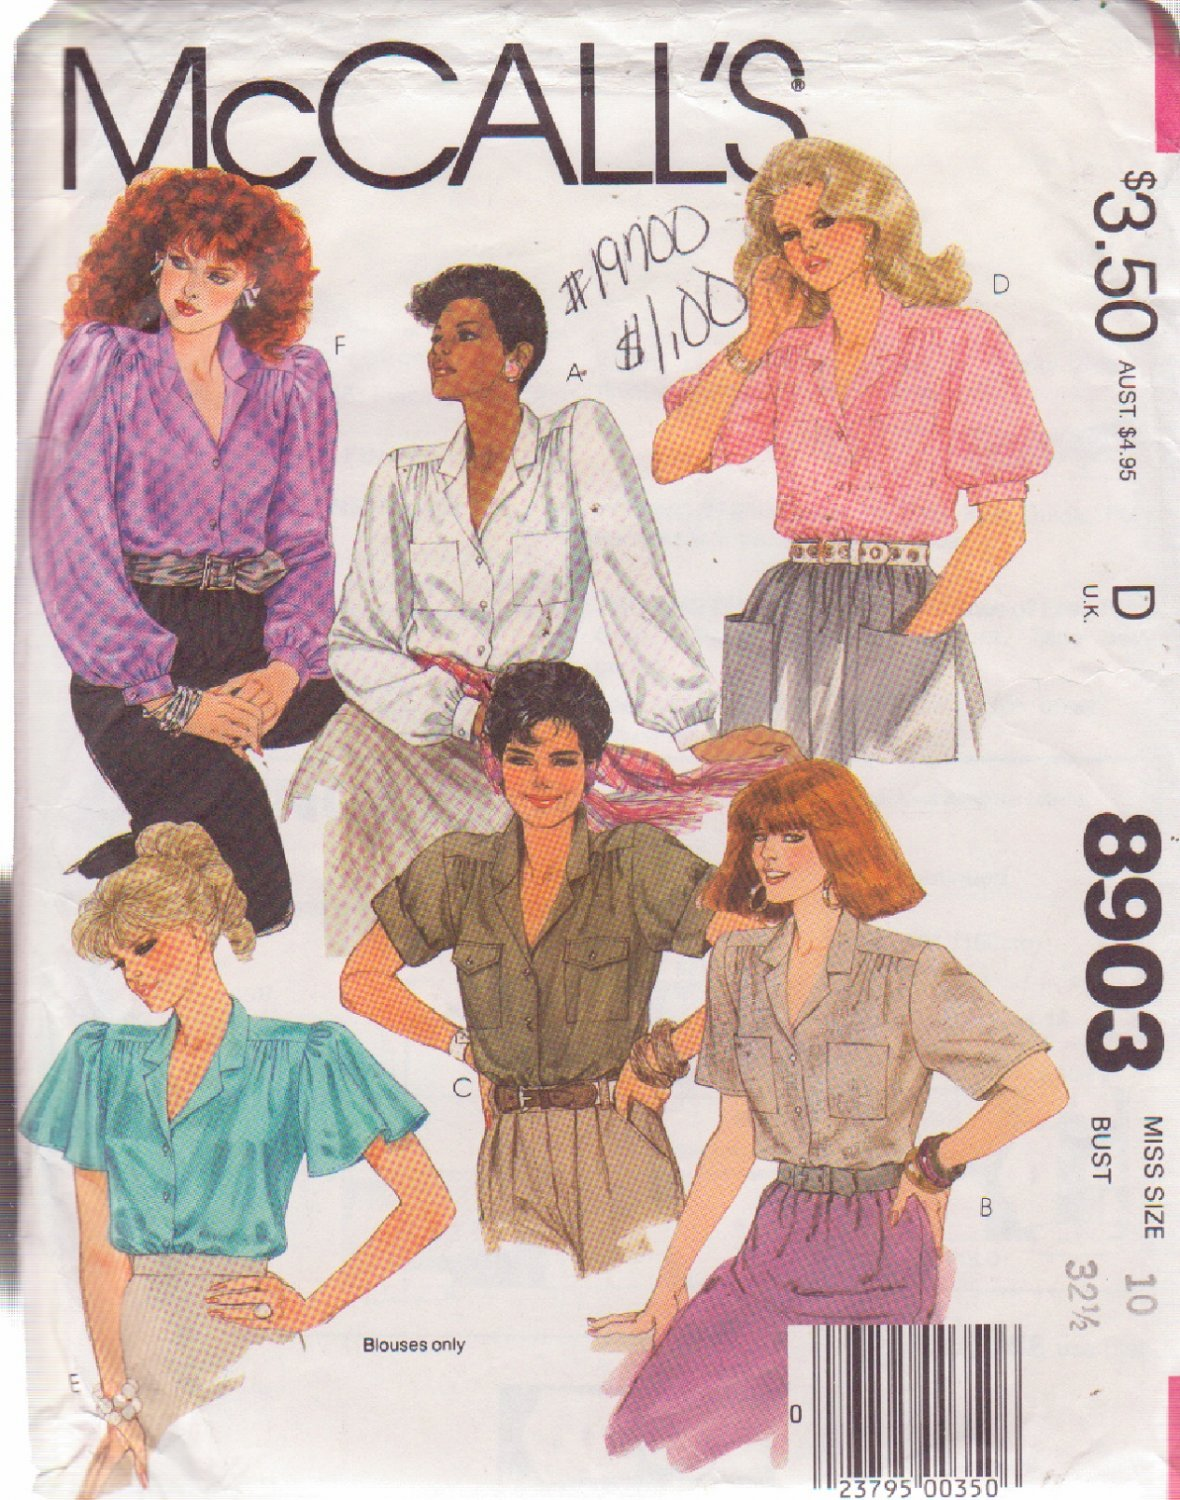 McCALL'S PATTERN 8903 SIZE 10  MISSES' BLOUSES IN 6 VARIATIONS